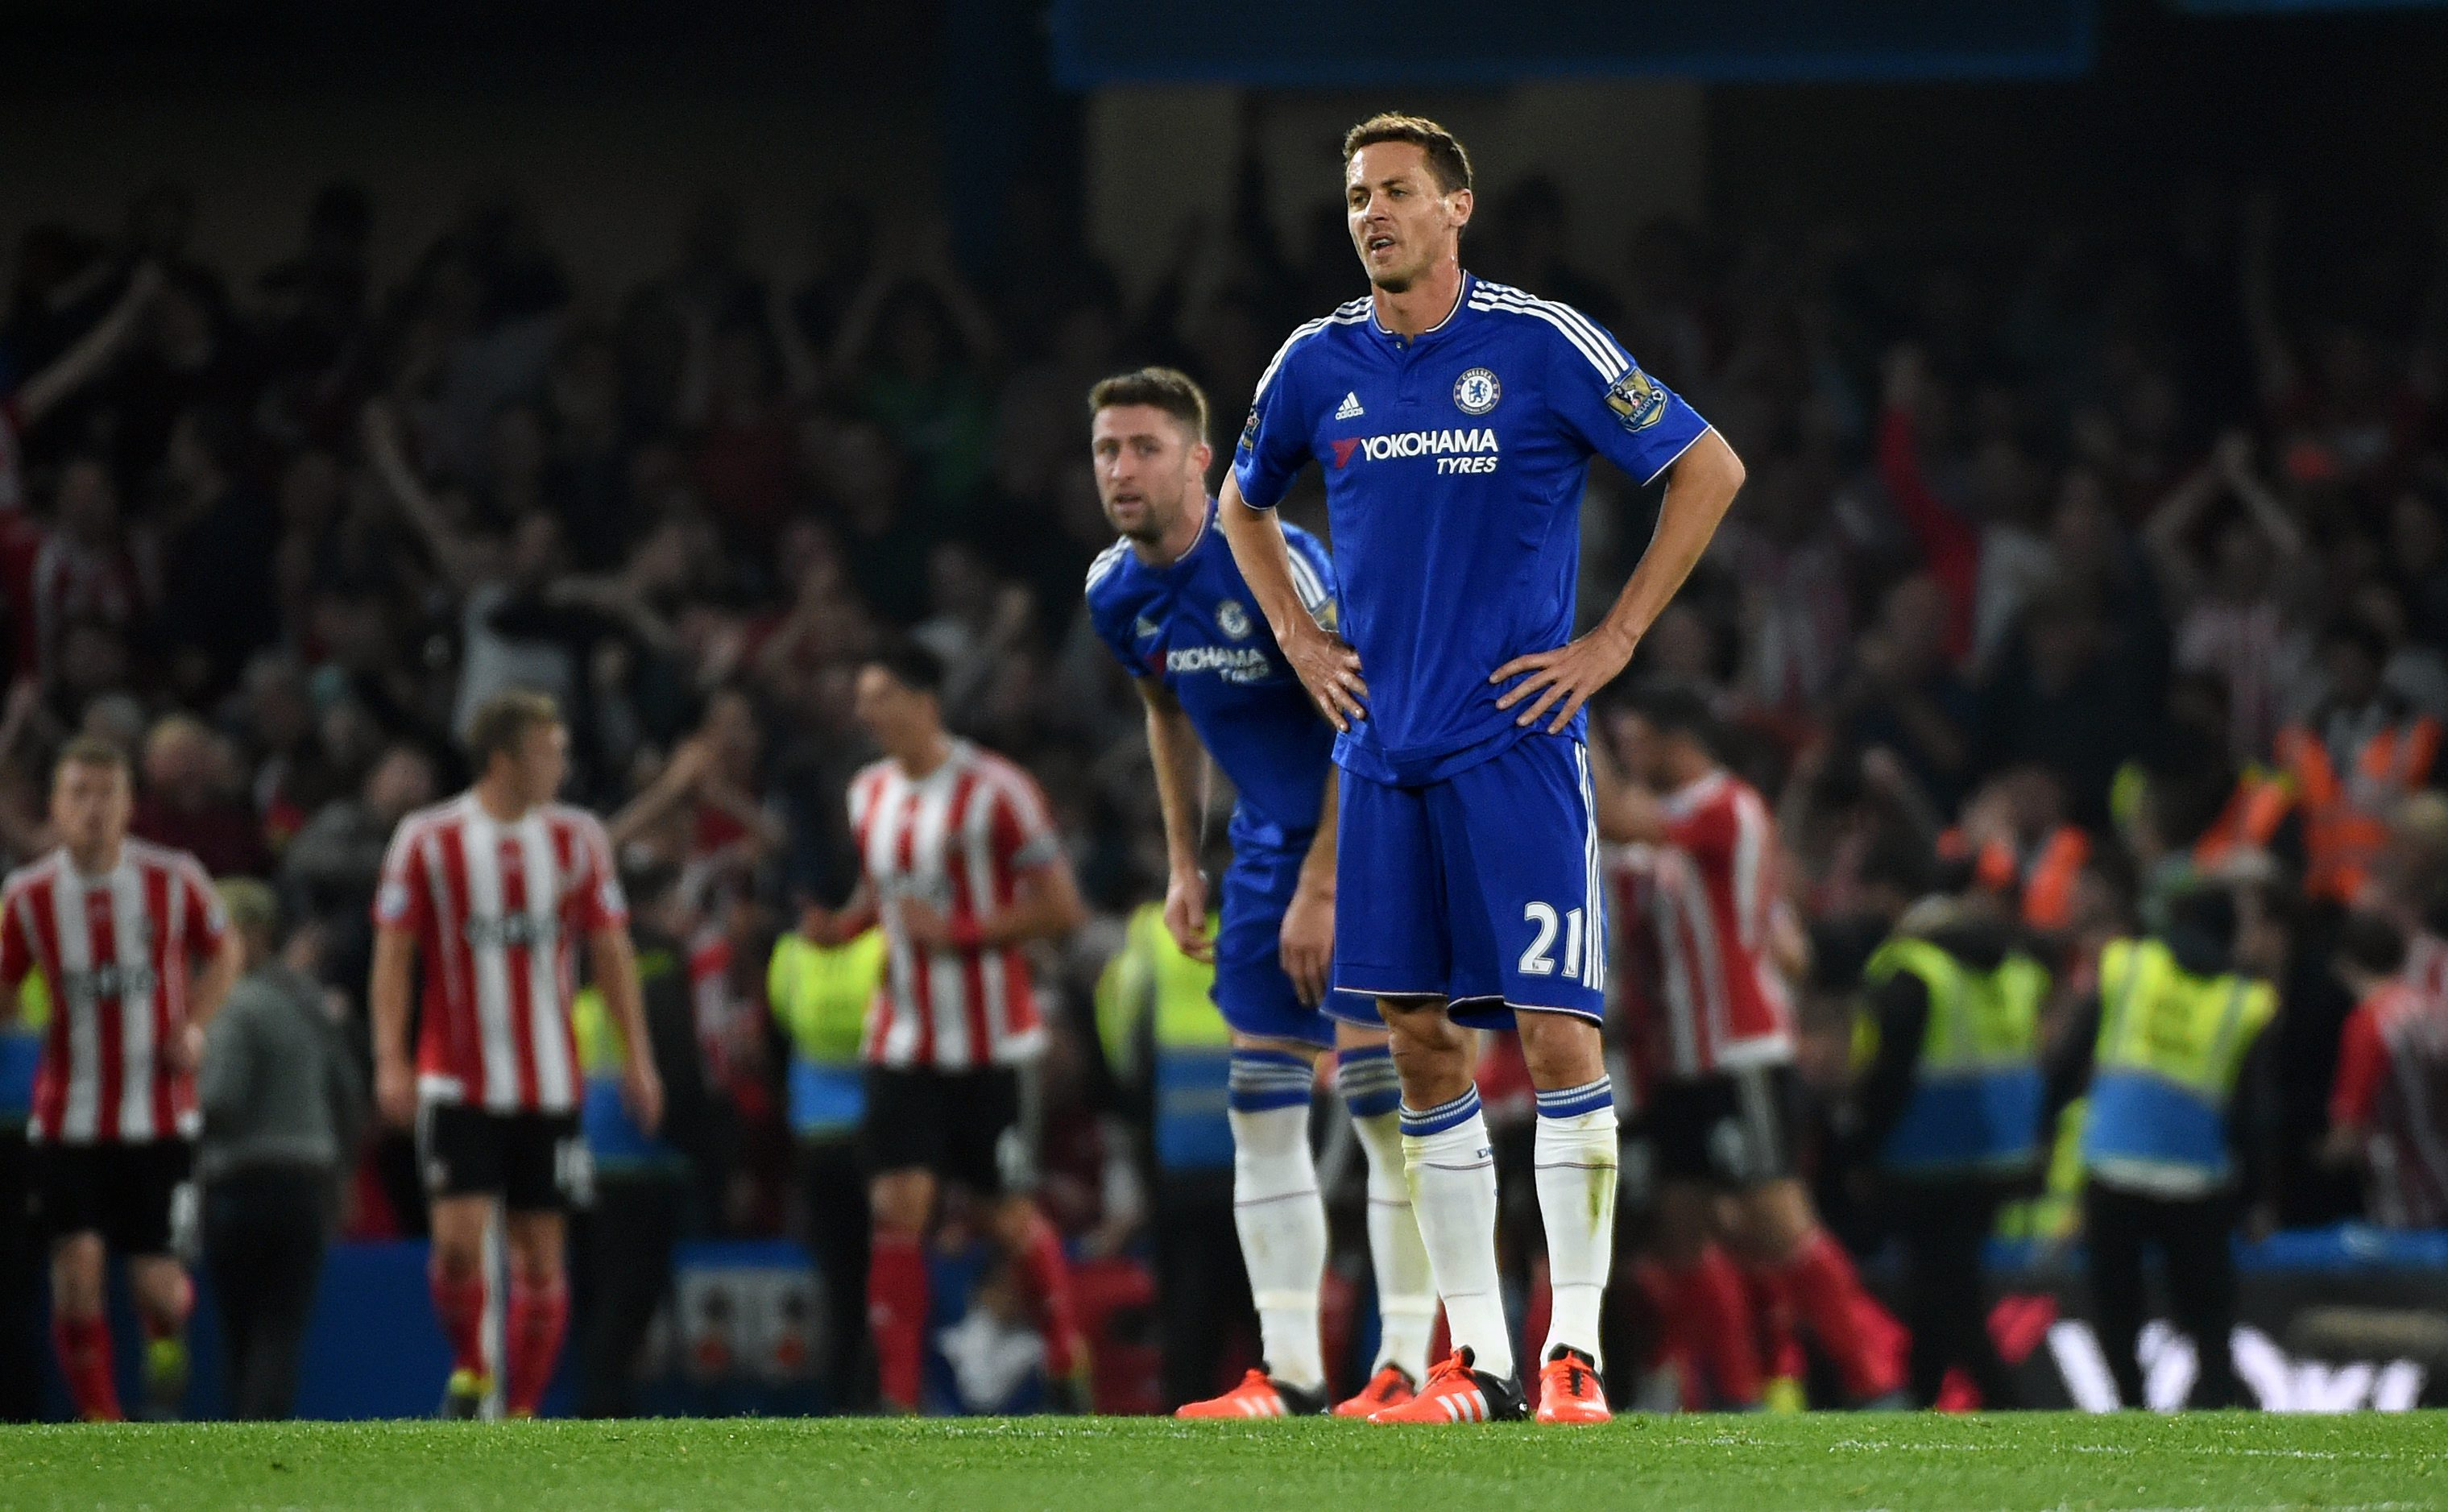 Are Matic and Hazard scapegoats for a deeper issue at Chelsea?